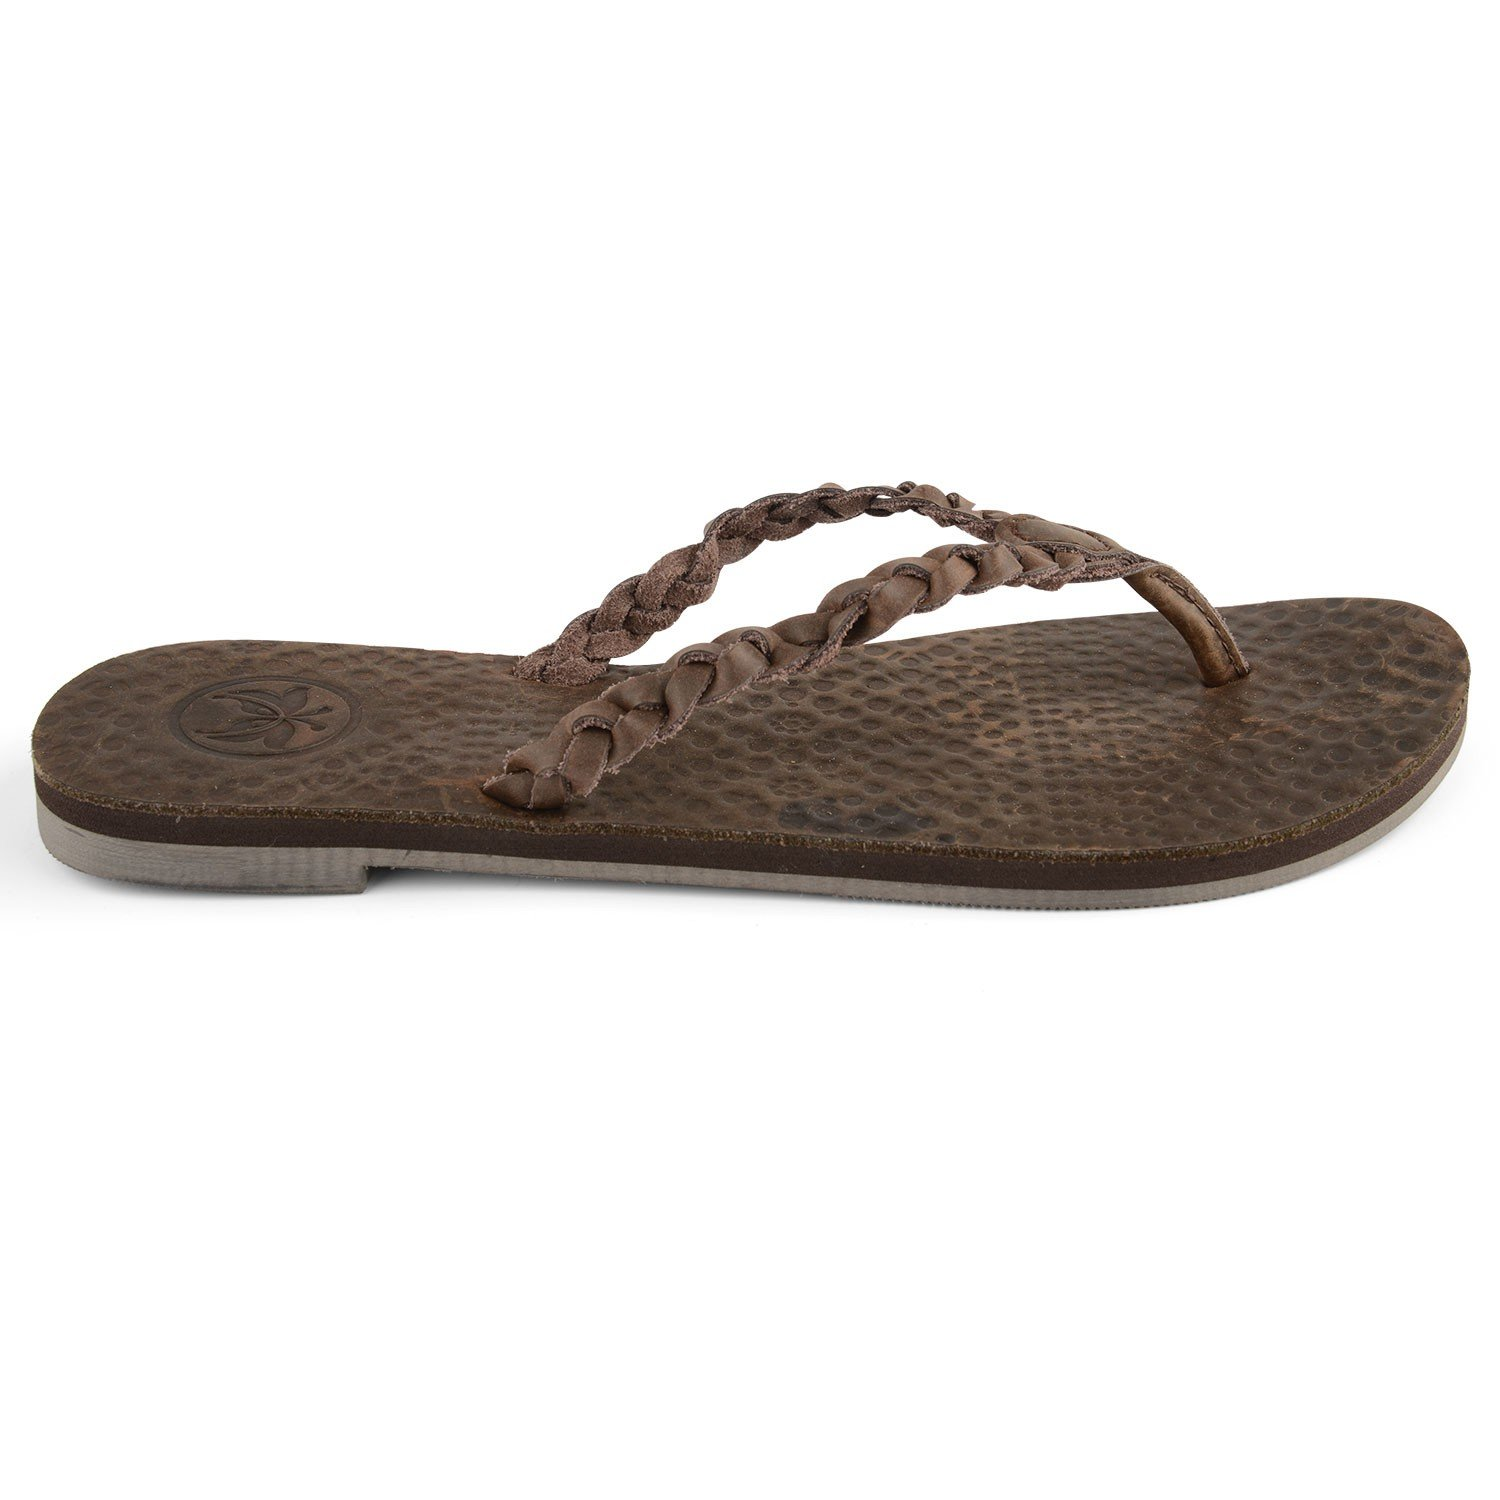 5f2e10820f8d0 Womens Brown Leather Flip Flops Jungle- Free Delivery Over £20 ...